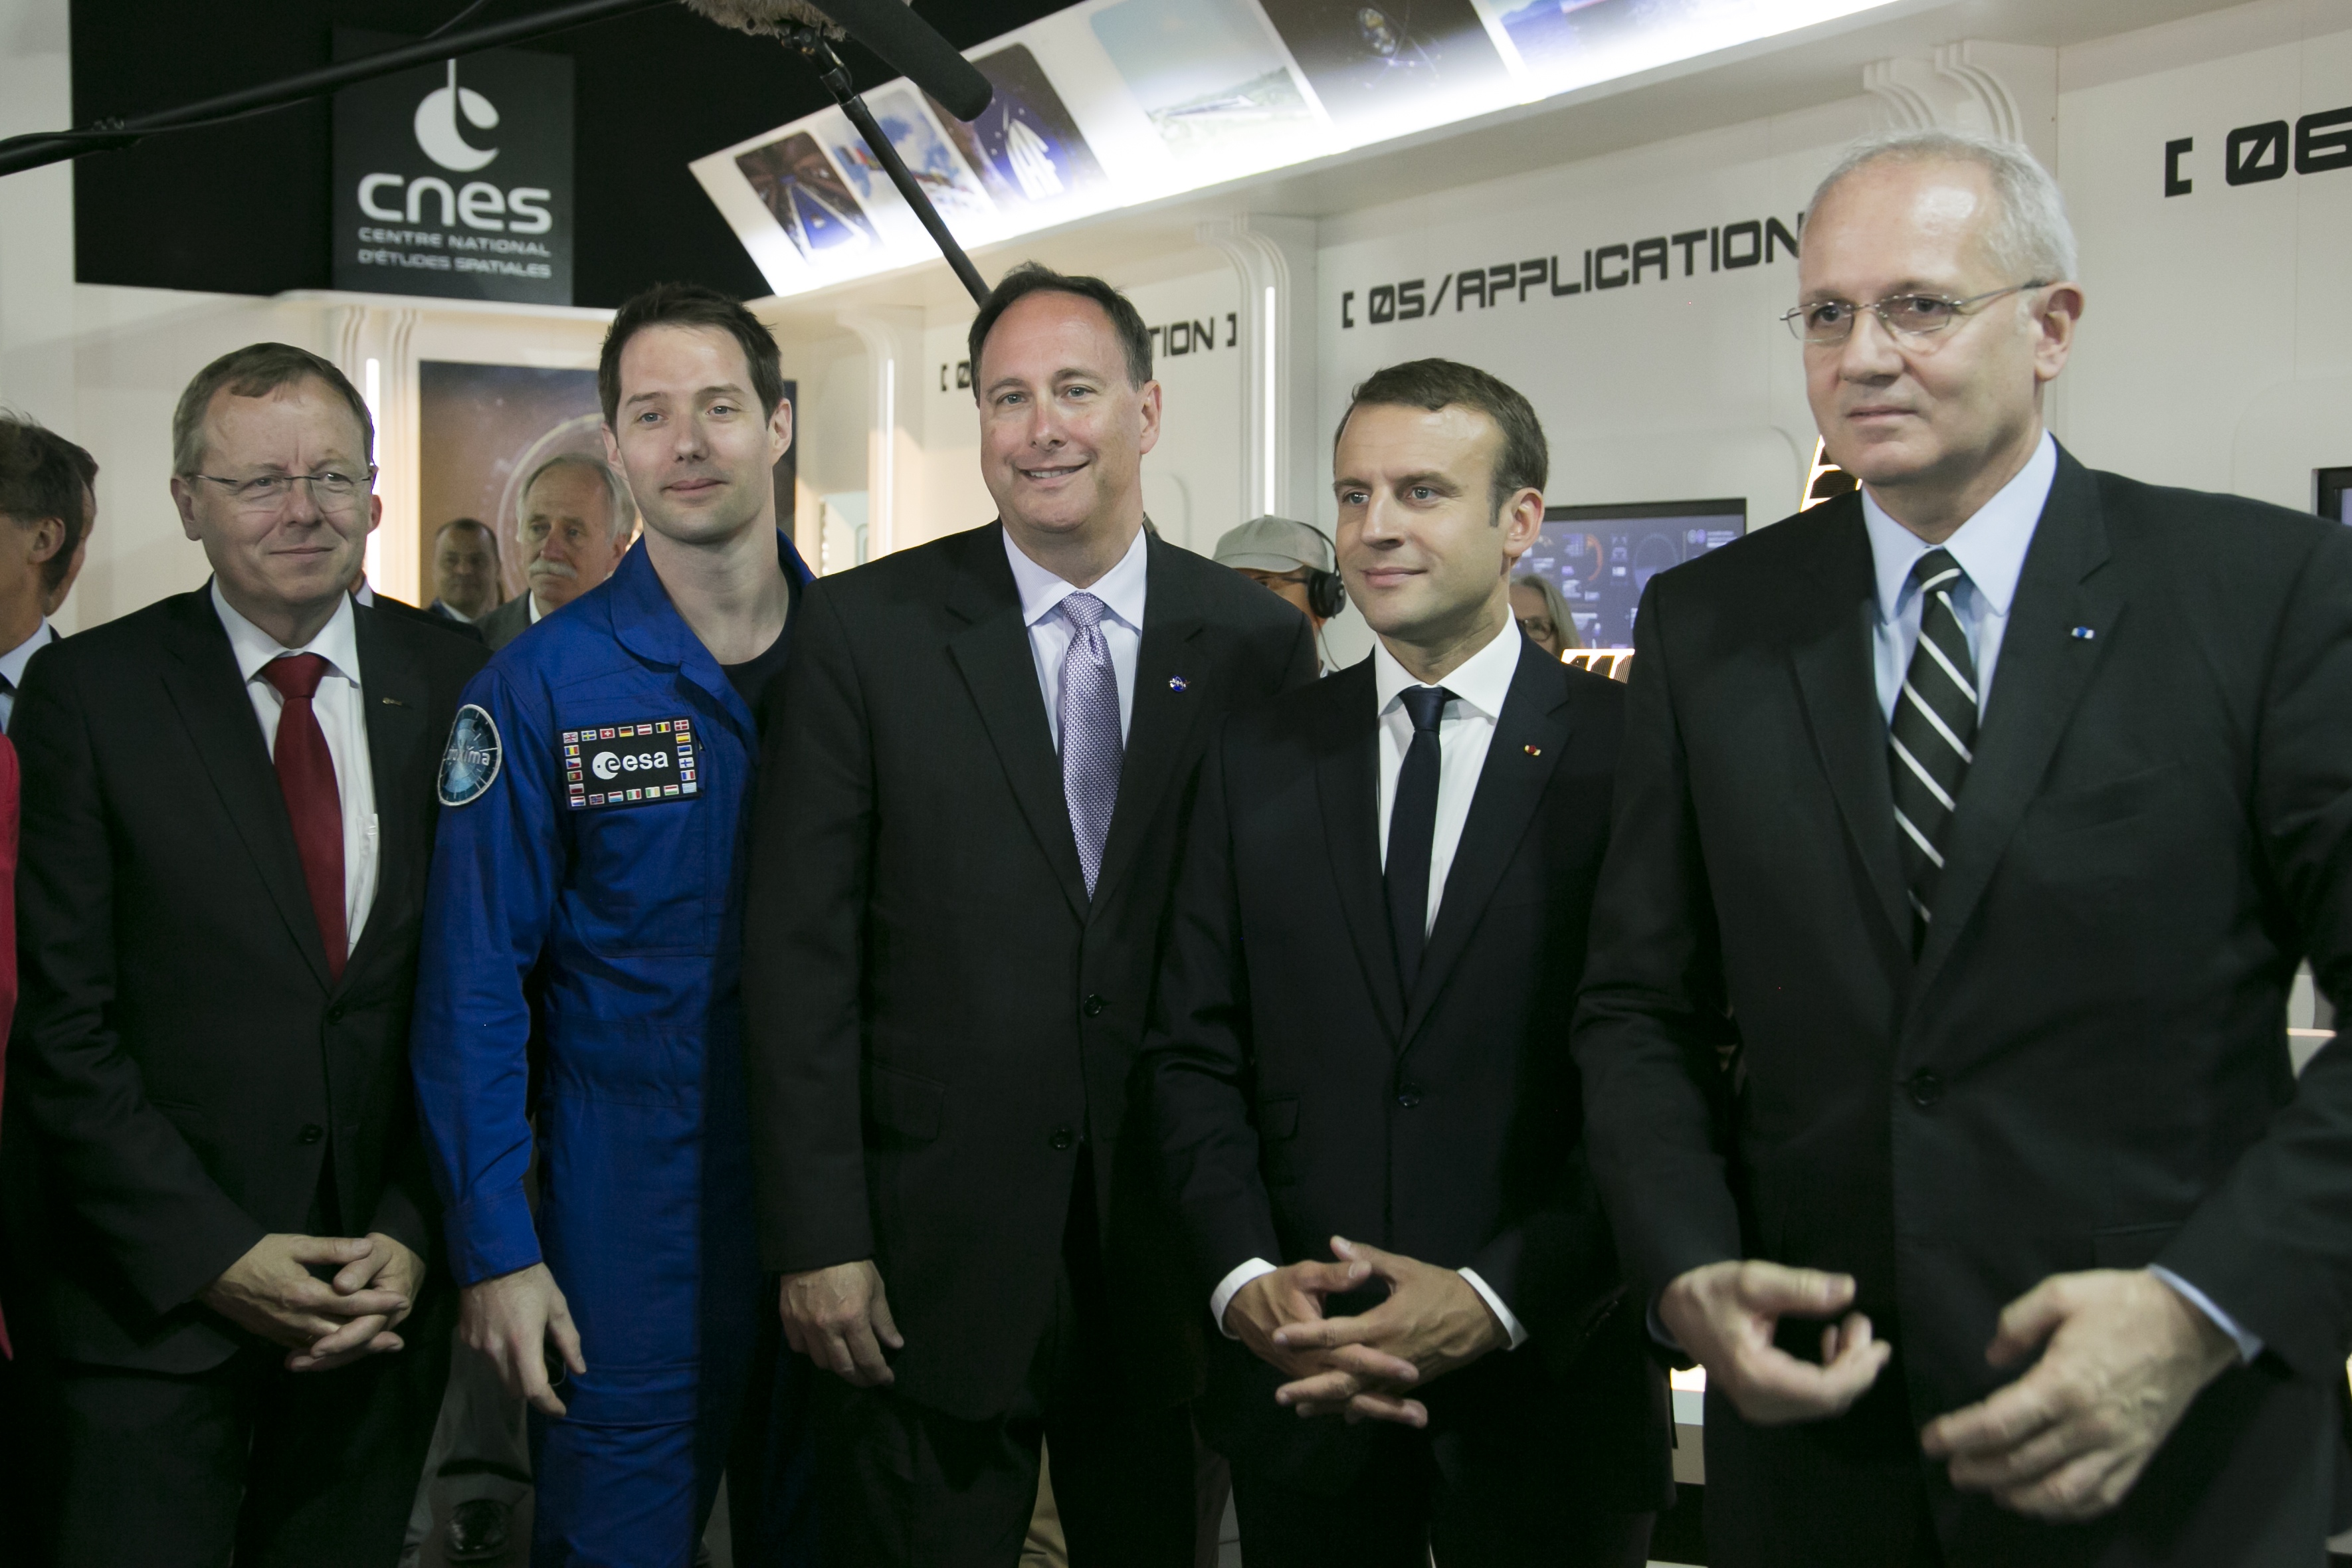 is_inauguration_le_bourget_0001.jpg